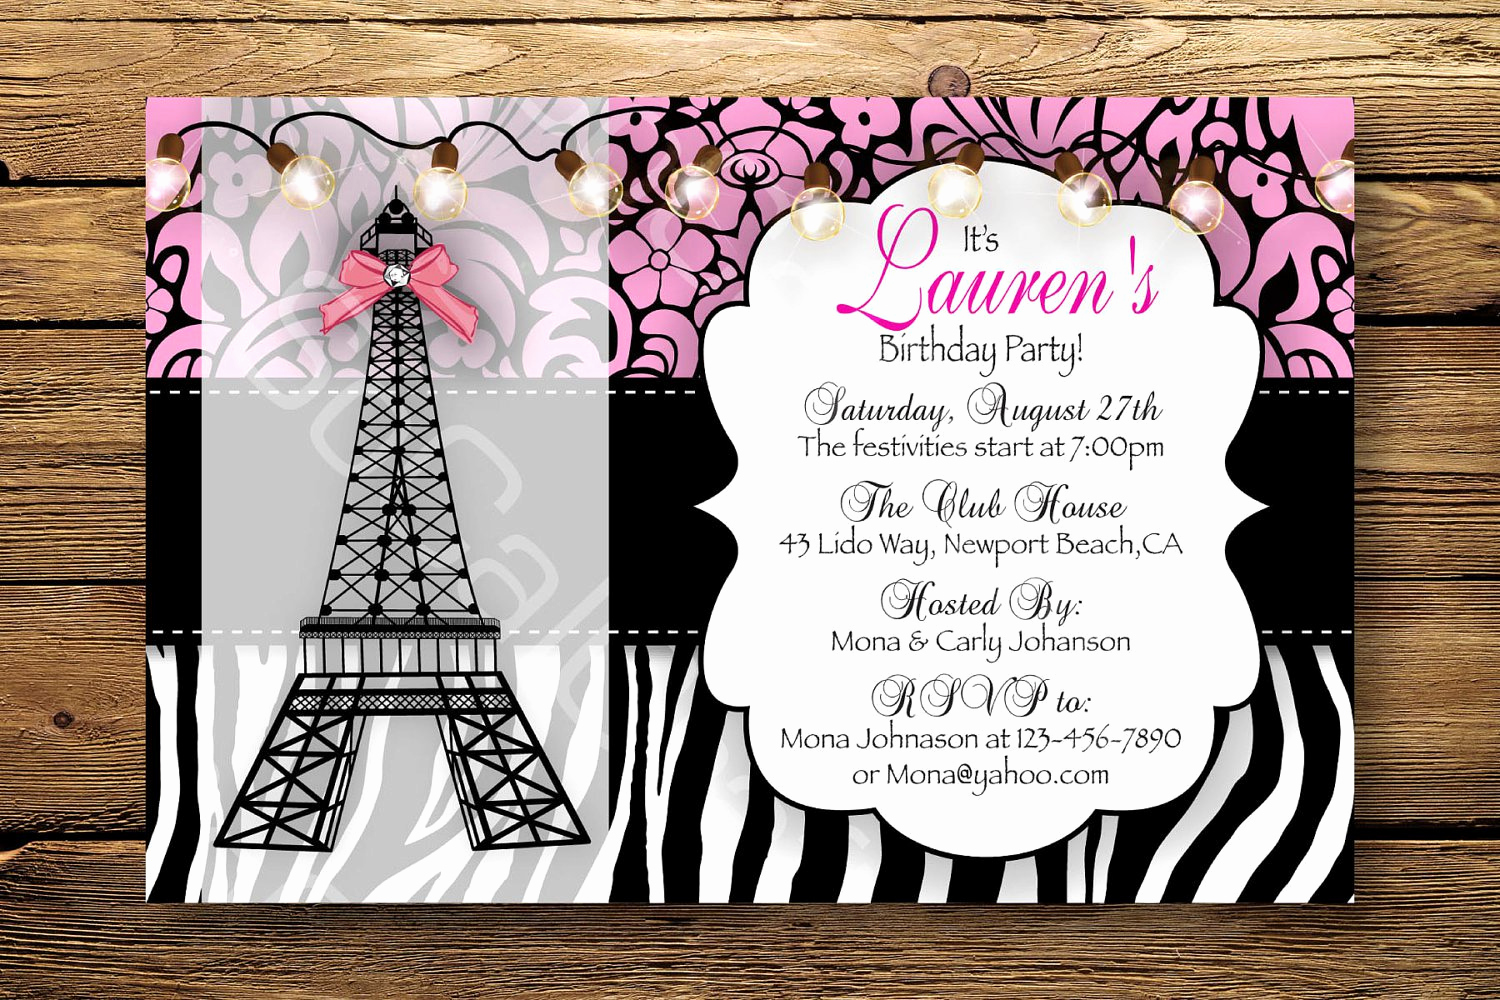 Free Paris themed Invitation Template Lovely Paris themed Birthday Invitations